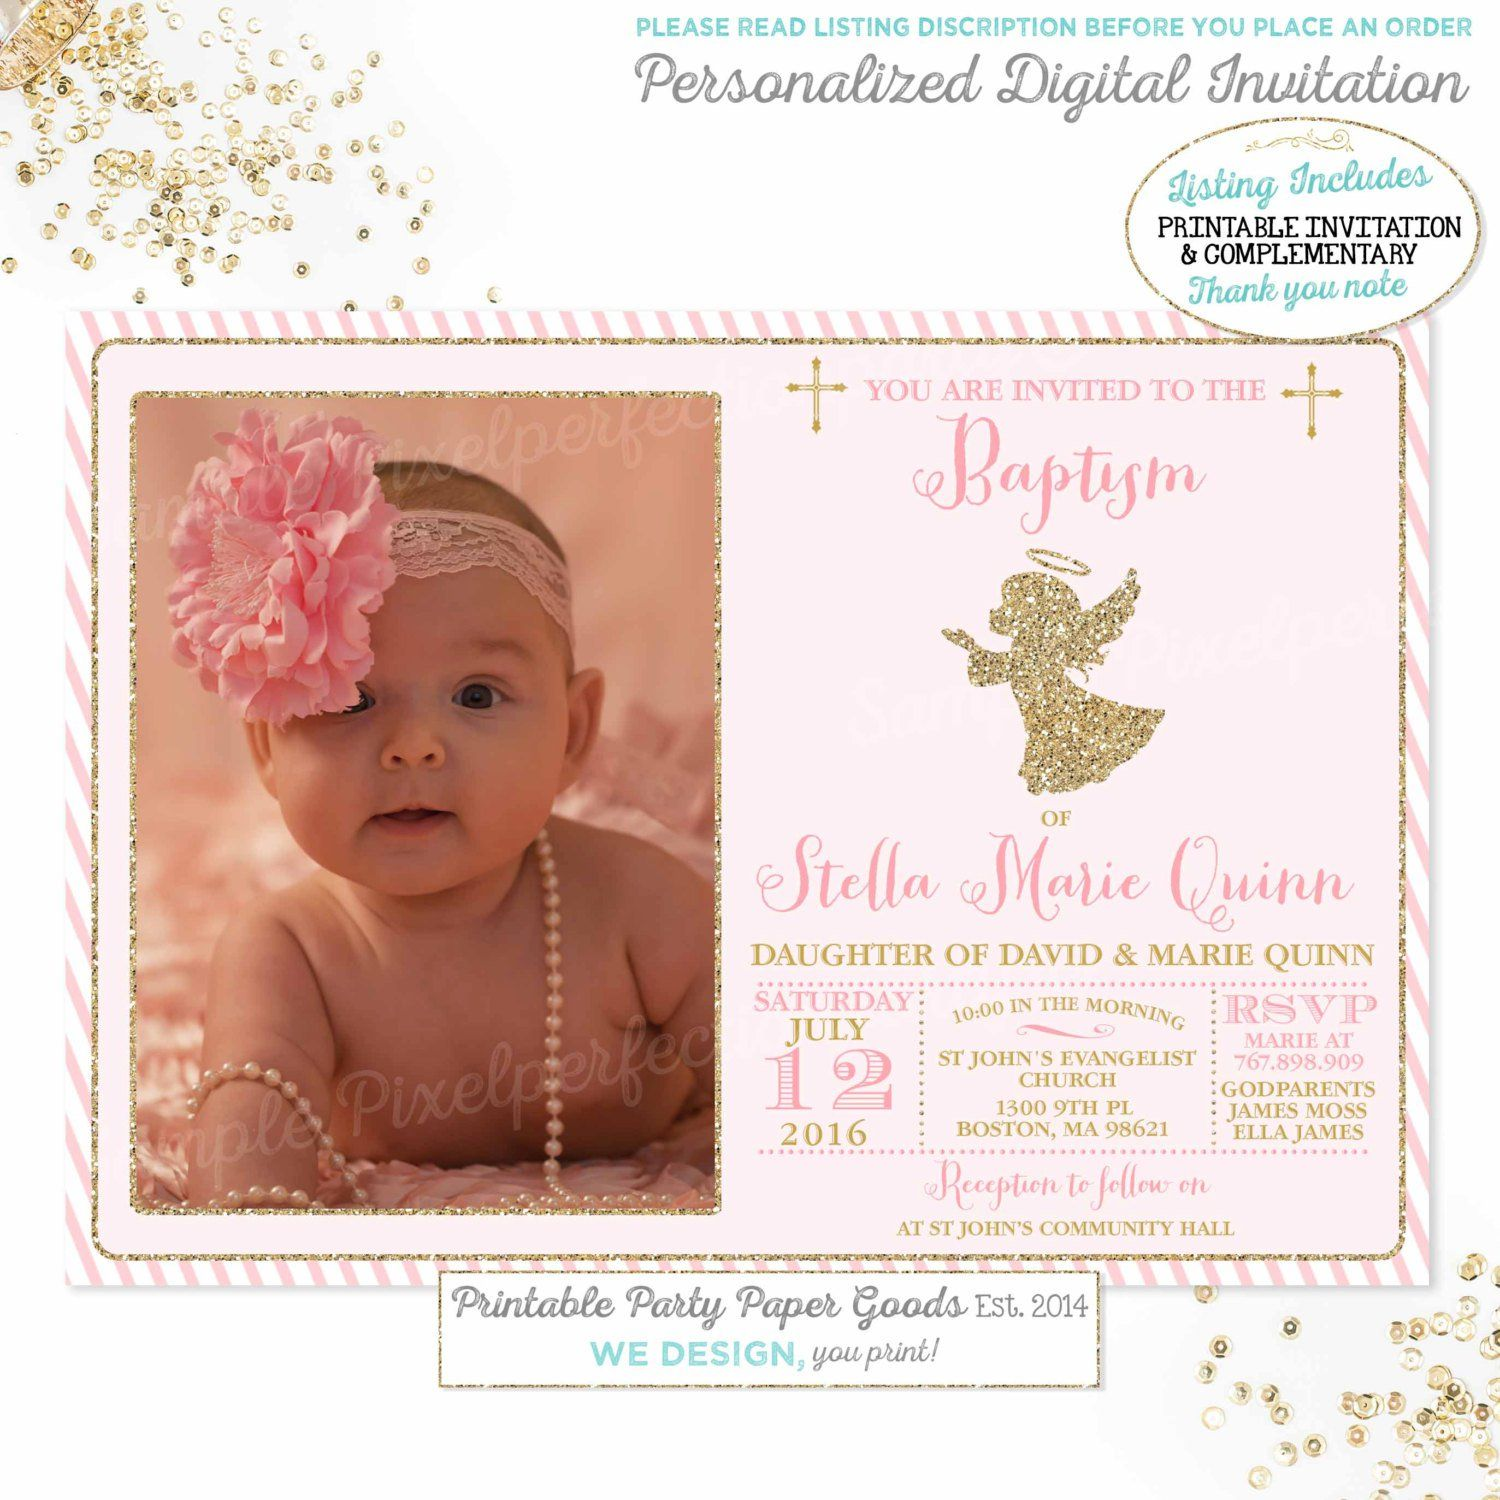 baptism invitations Cheap baptism invitations Invitations Design